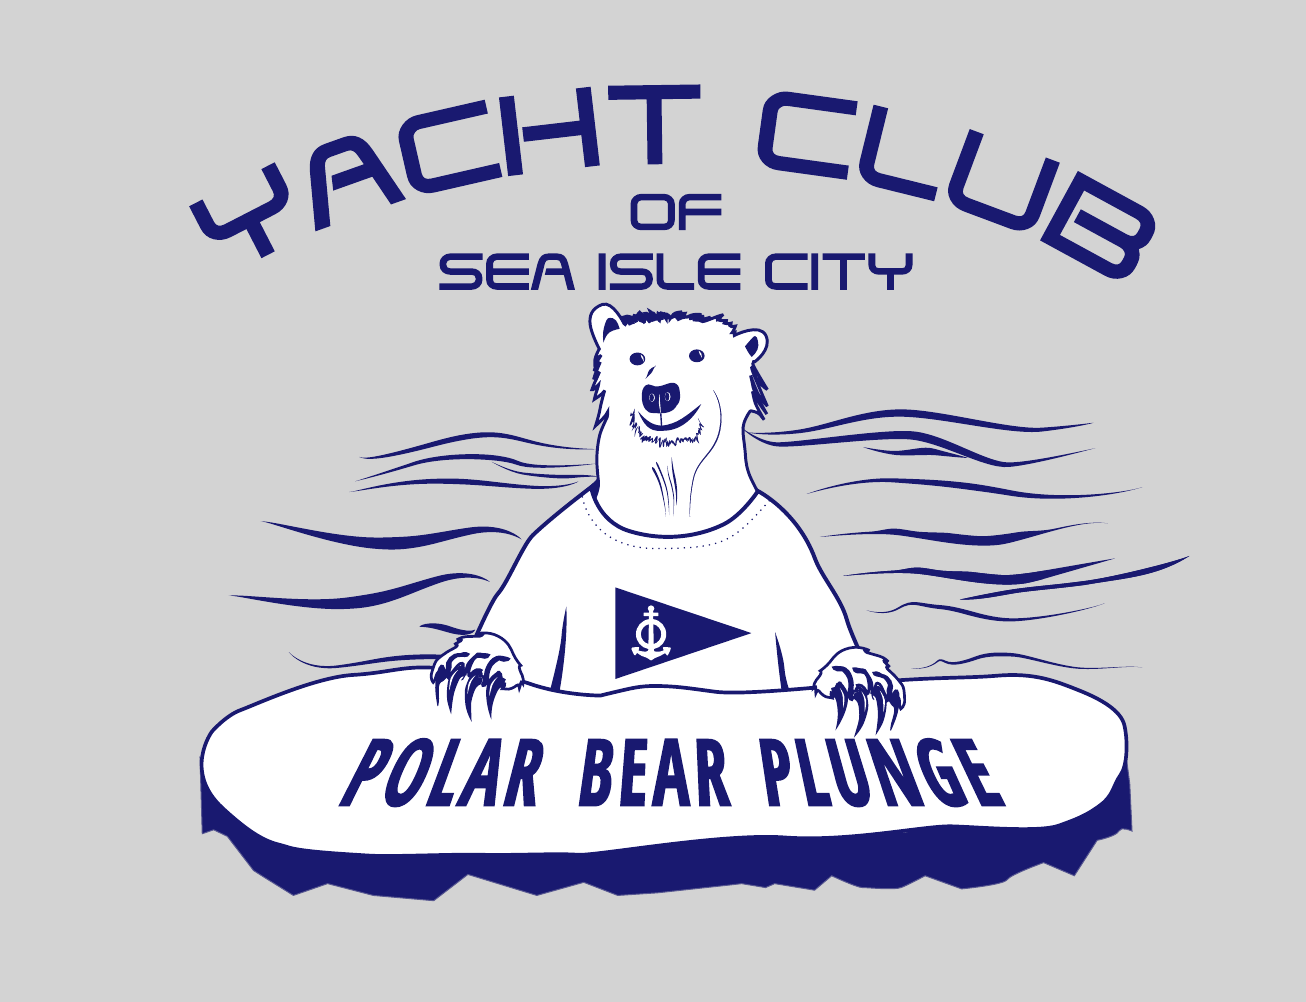 Polar Bear Plunge Yacht Club